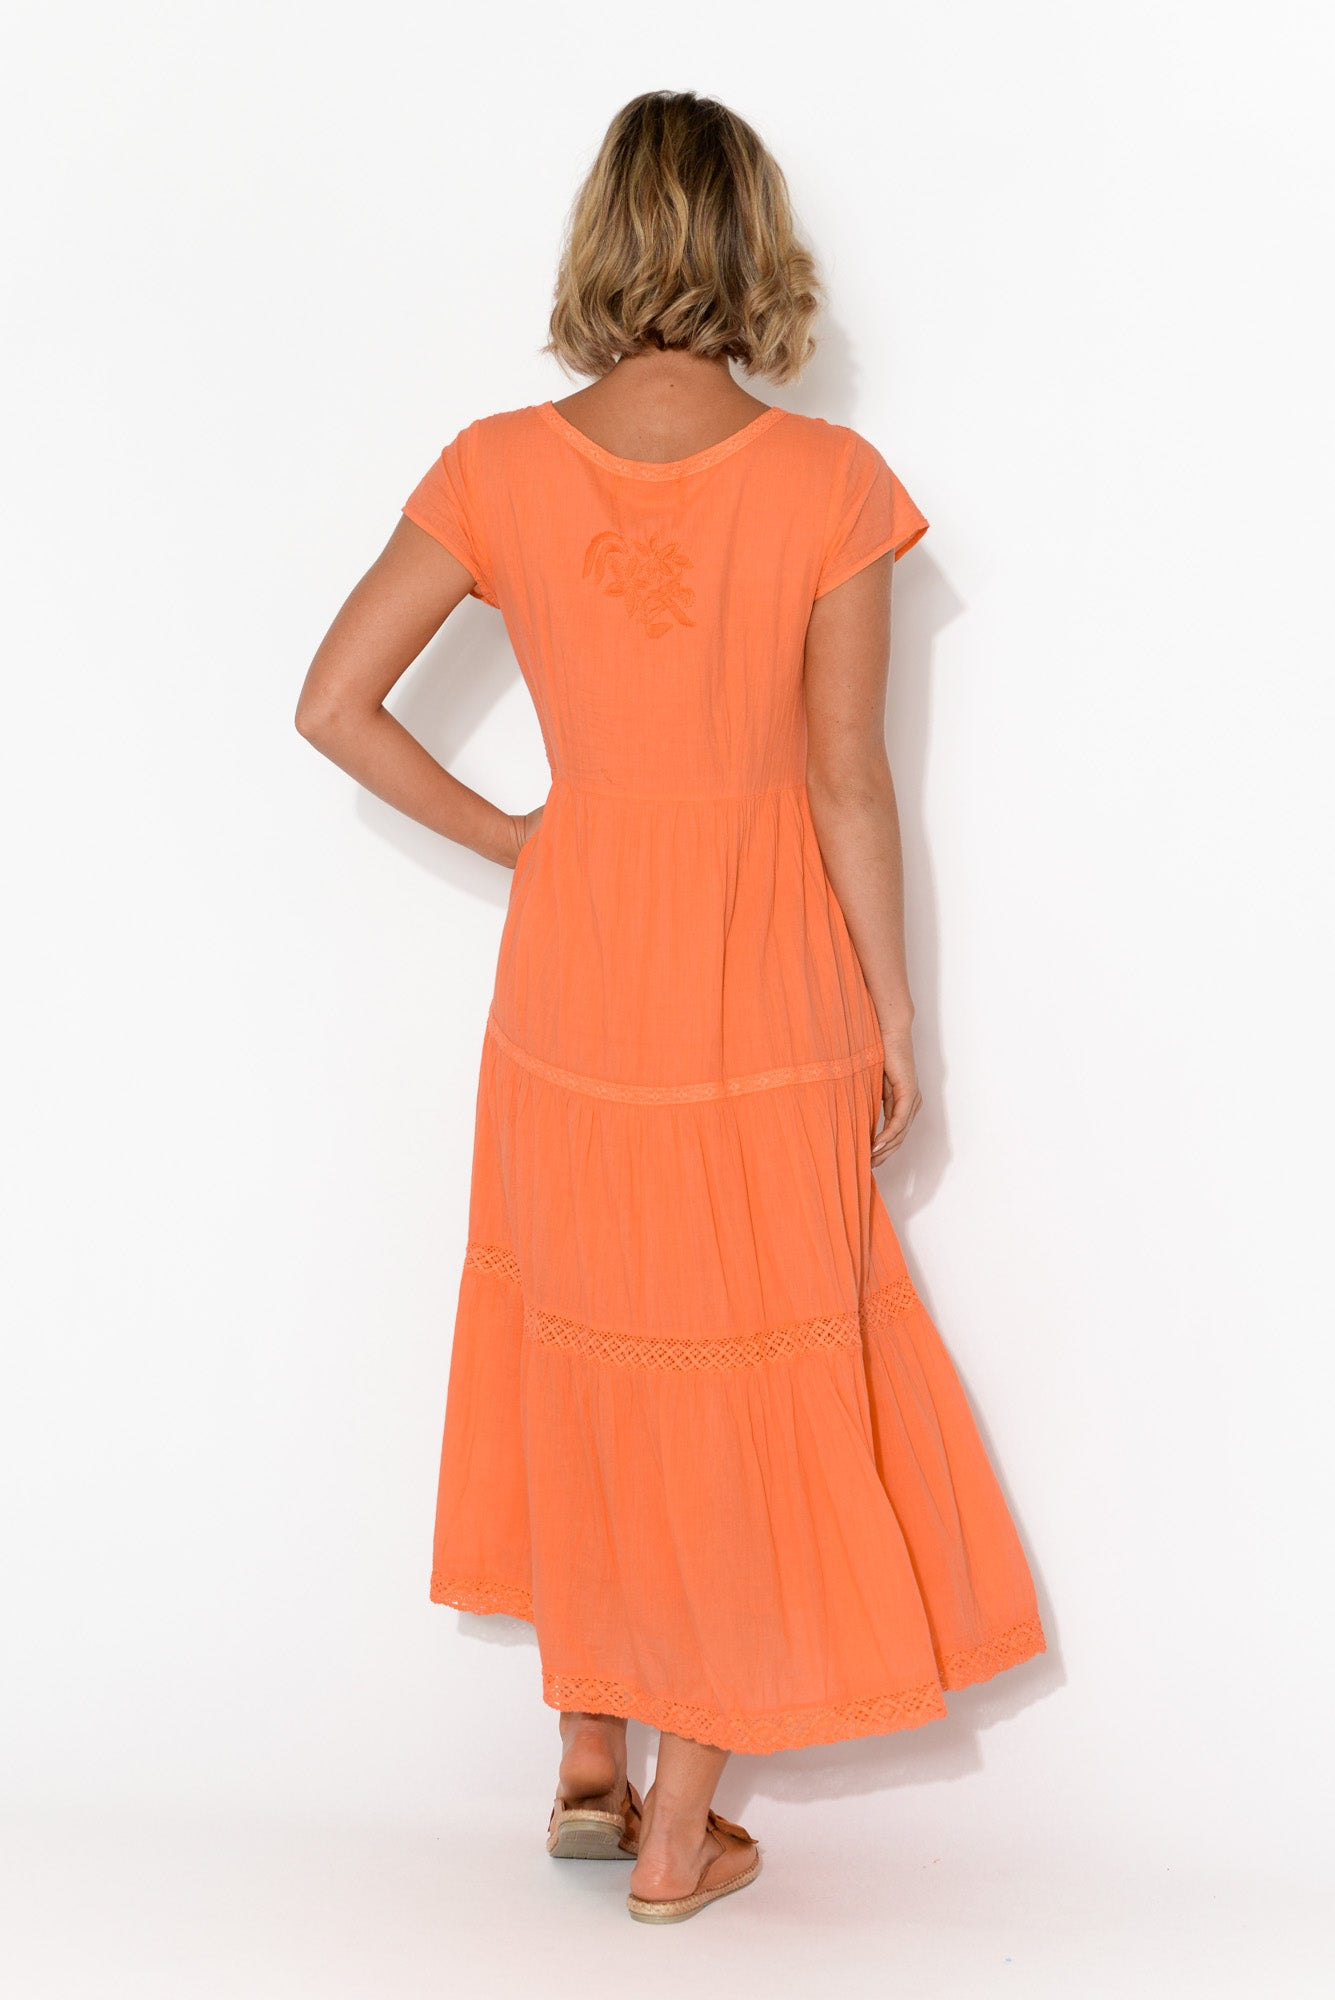 Phoebe Orange Cotton Tiered Maxi Dress